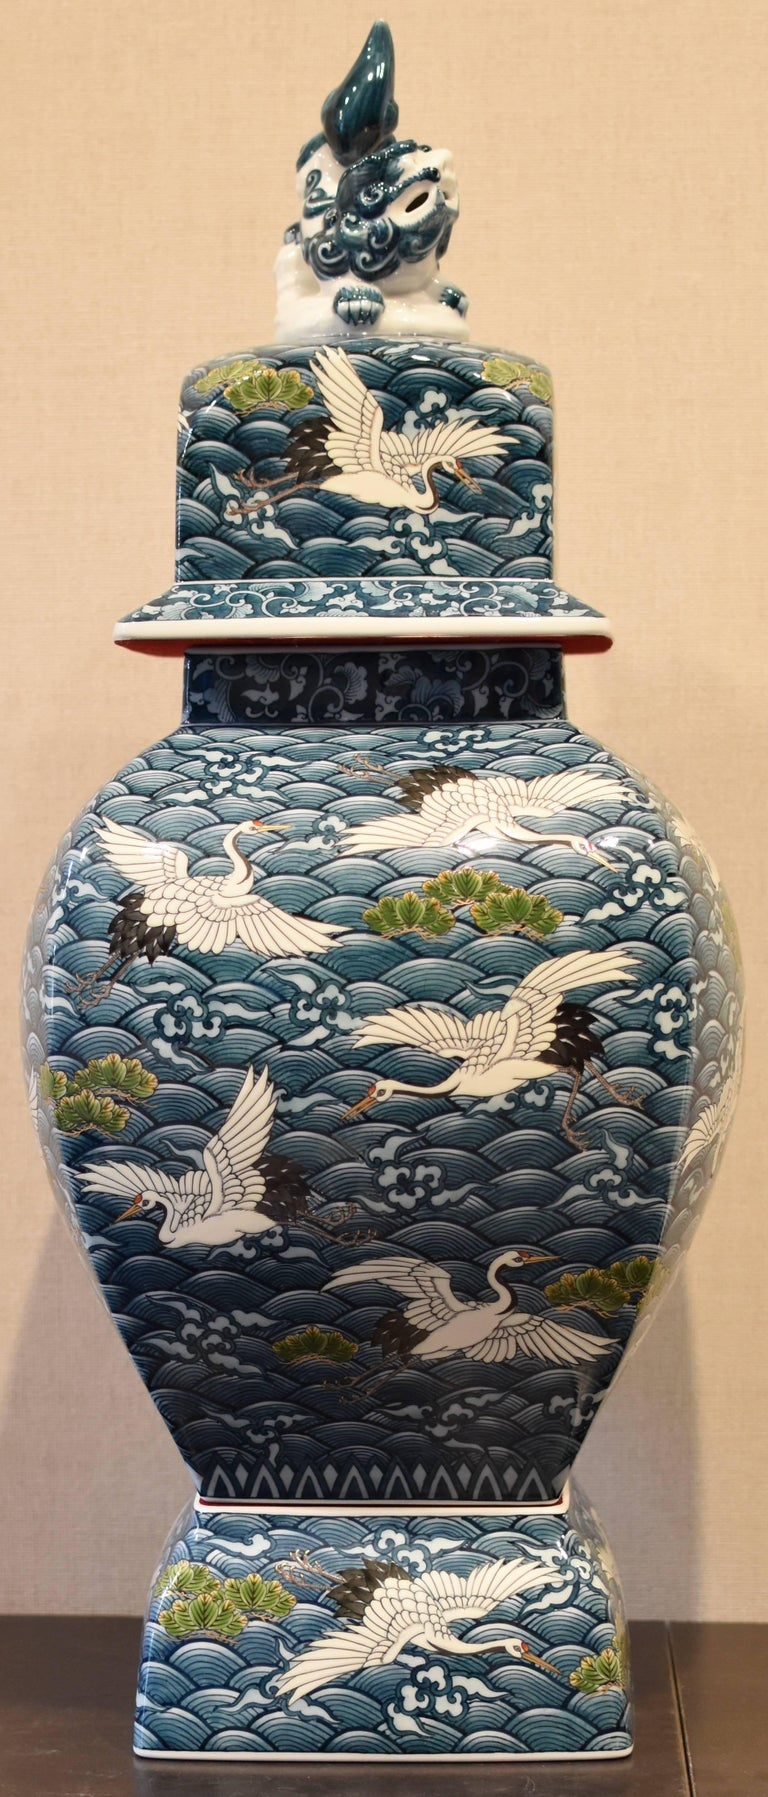 Large Japanese Imari Hand-Painted Decorative Porcelain Vase by Master Artist For Sale 5